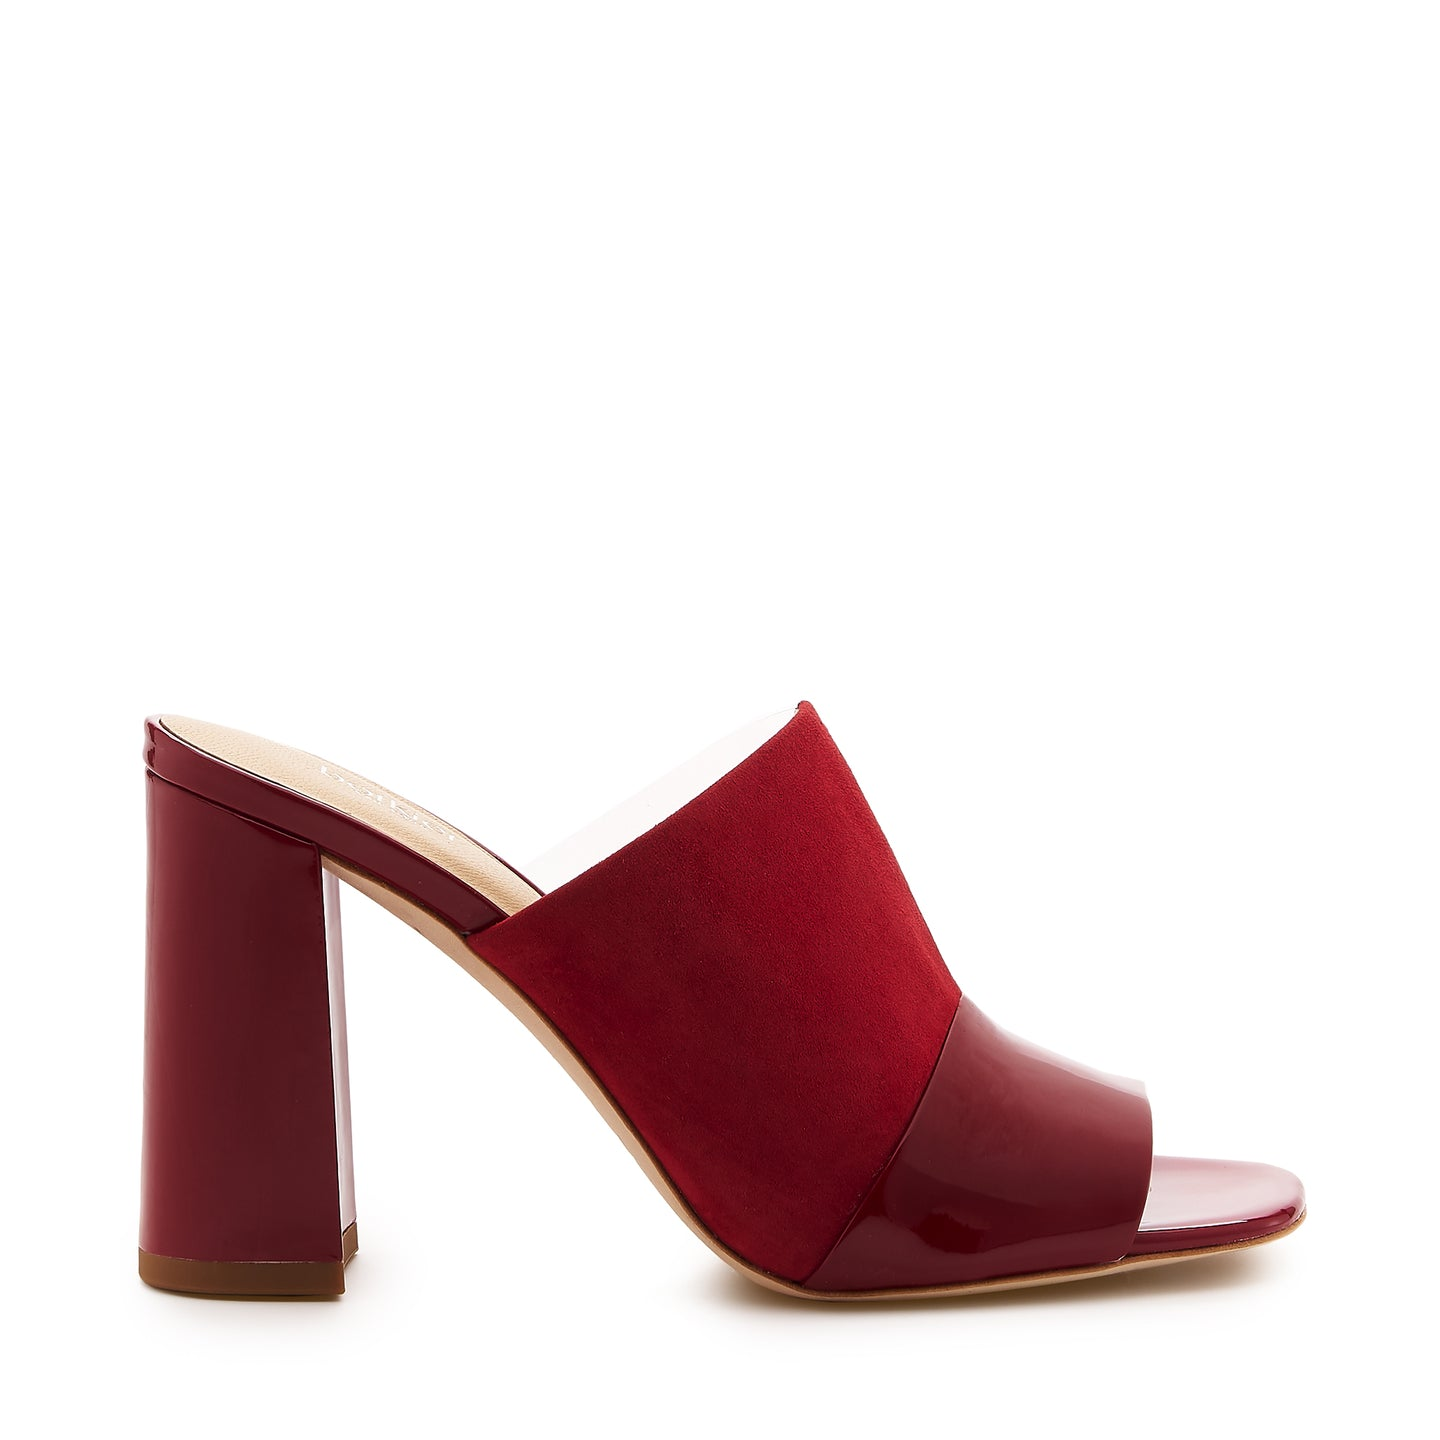 botkier rialto open toe heel mule in cherry red suede patent and clear pvc patchword